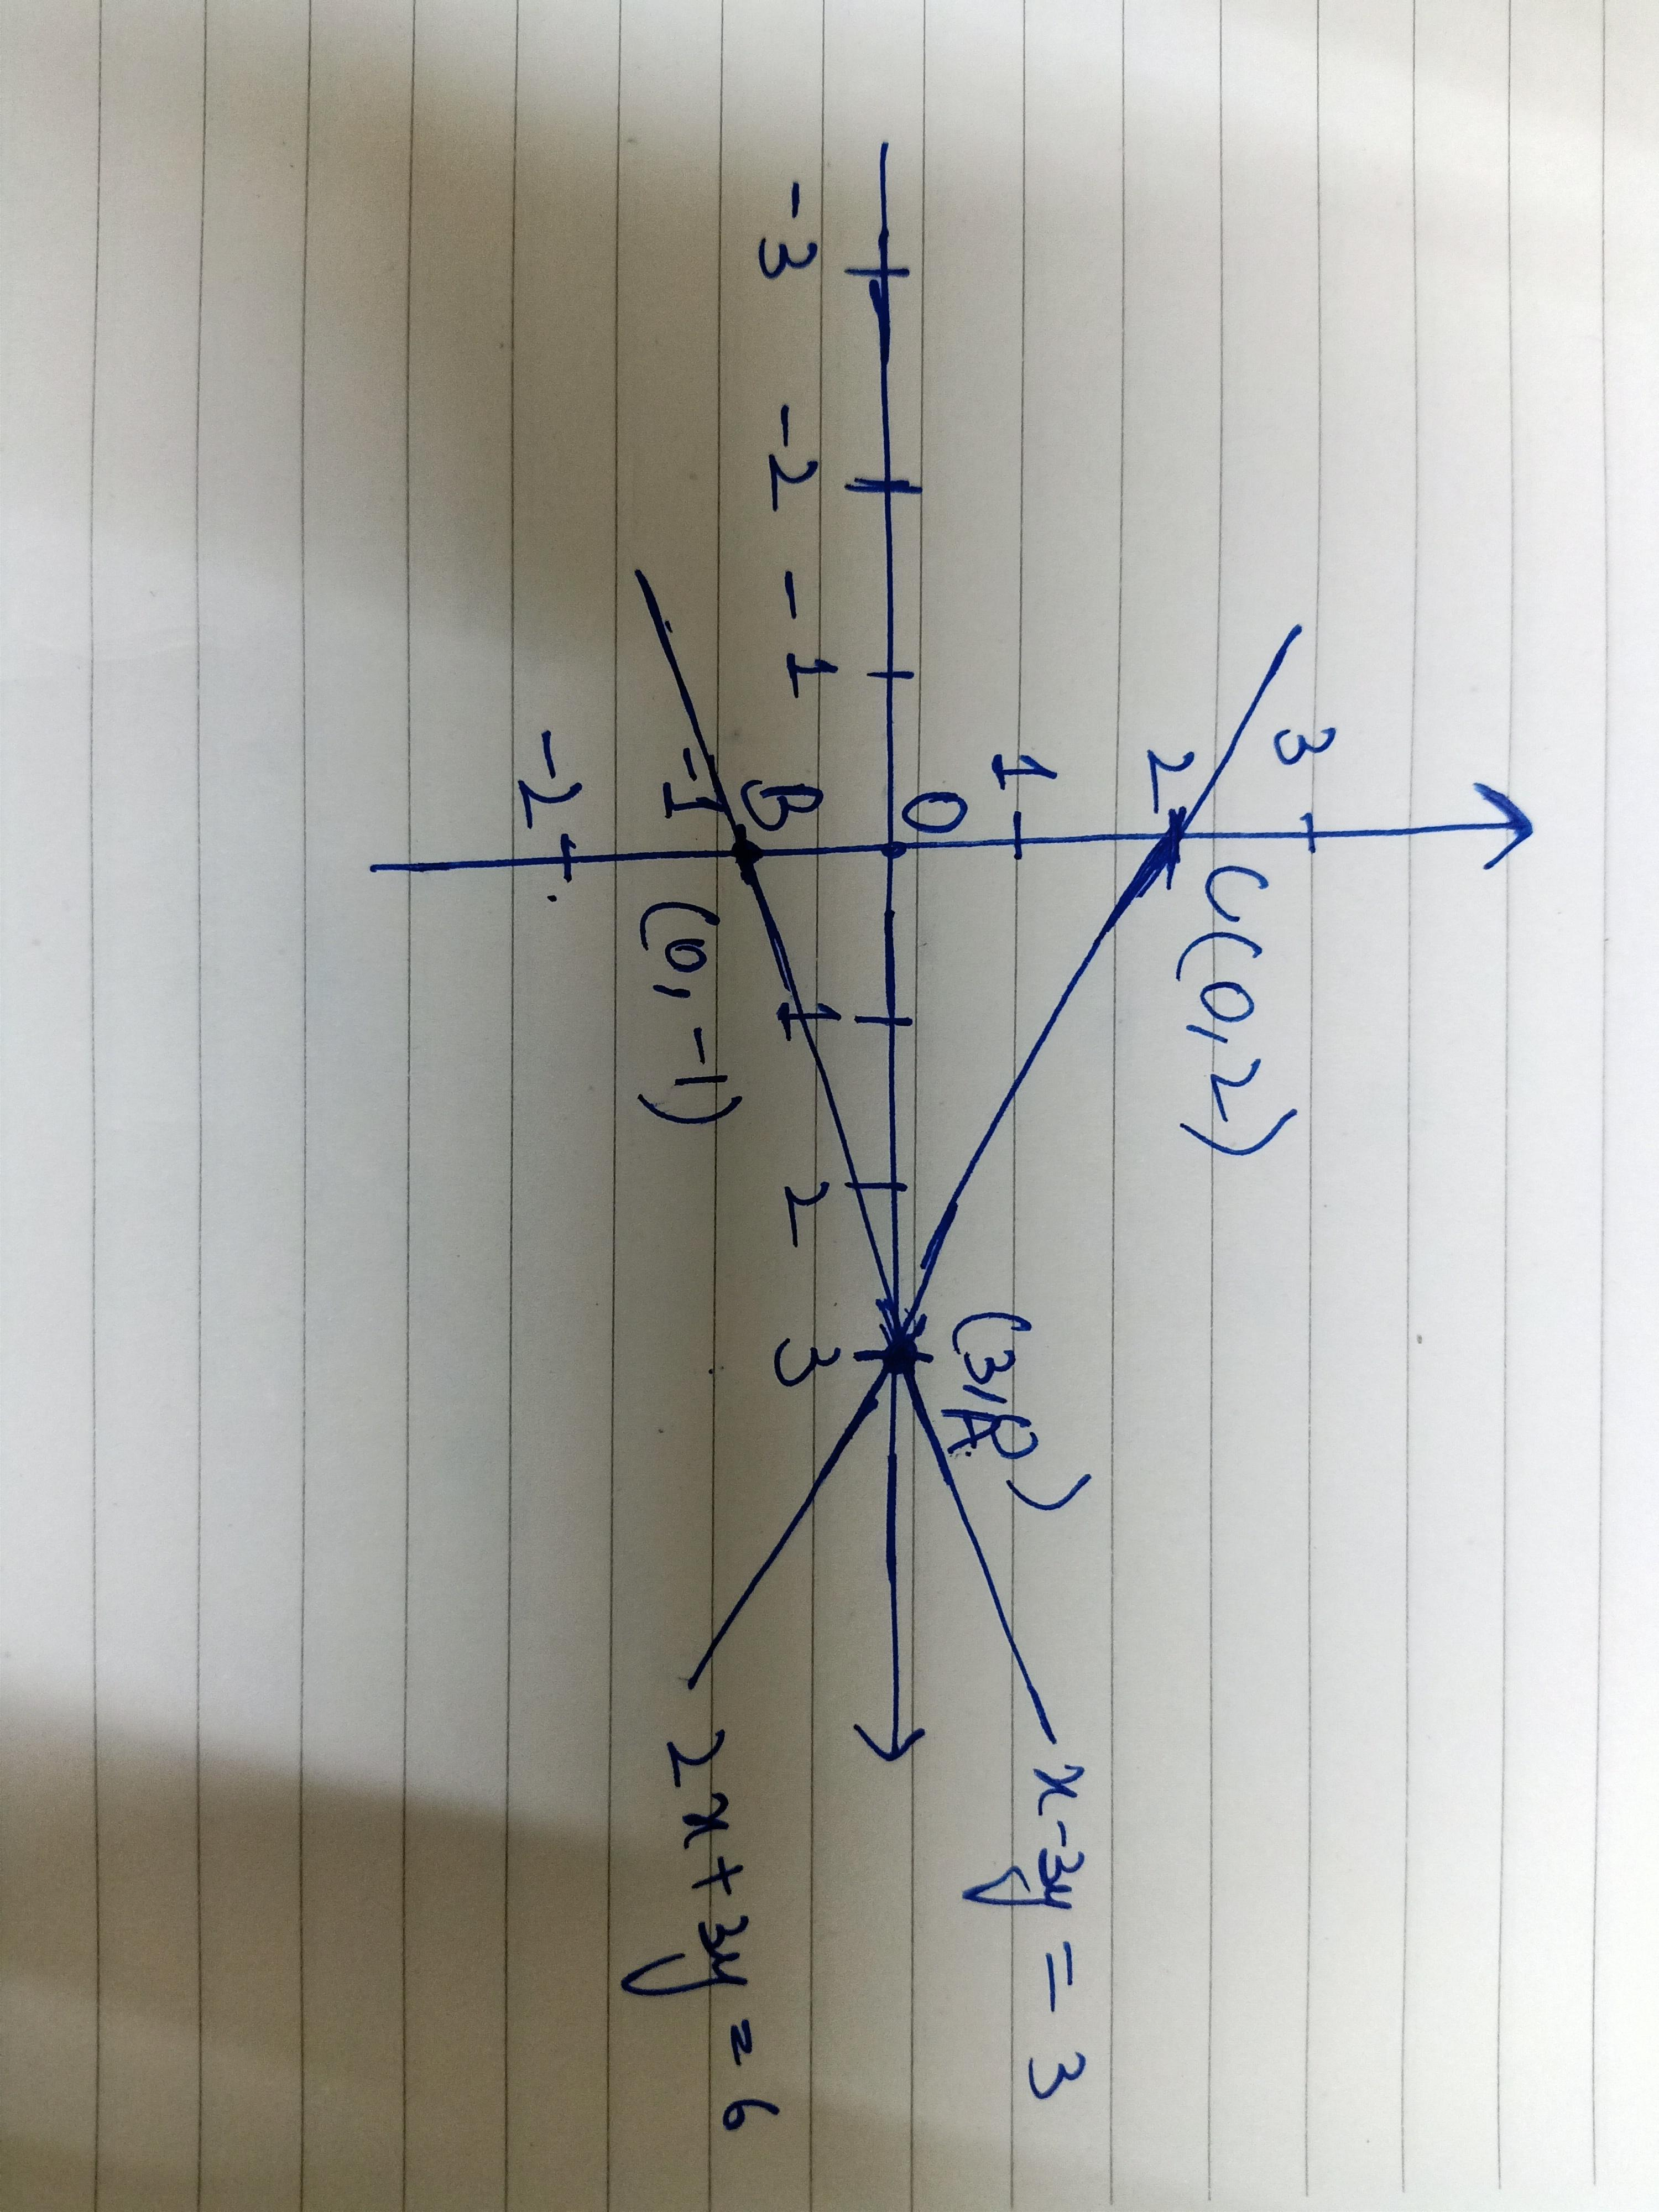 Solve Graphically The Following System Of Linear Equations